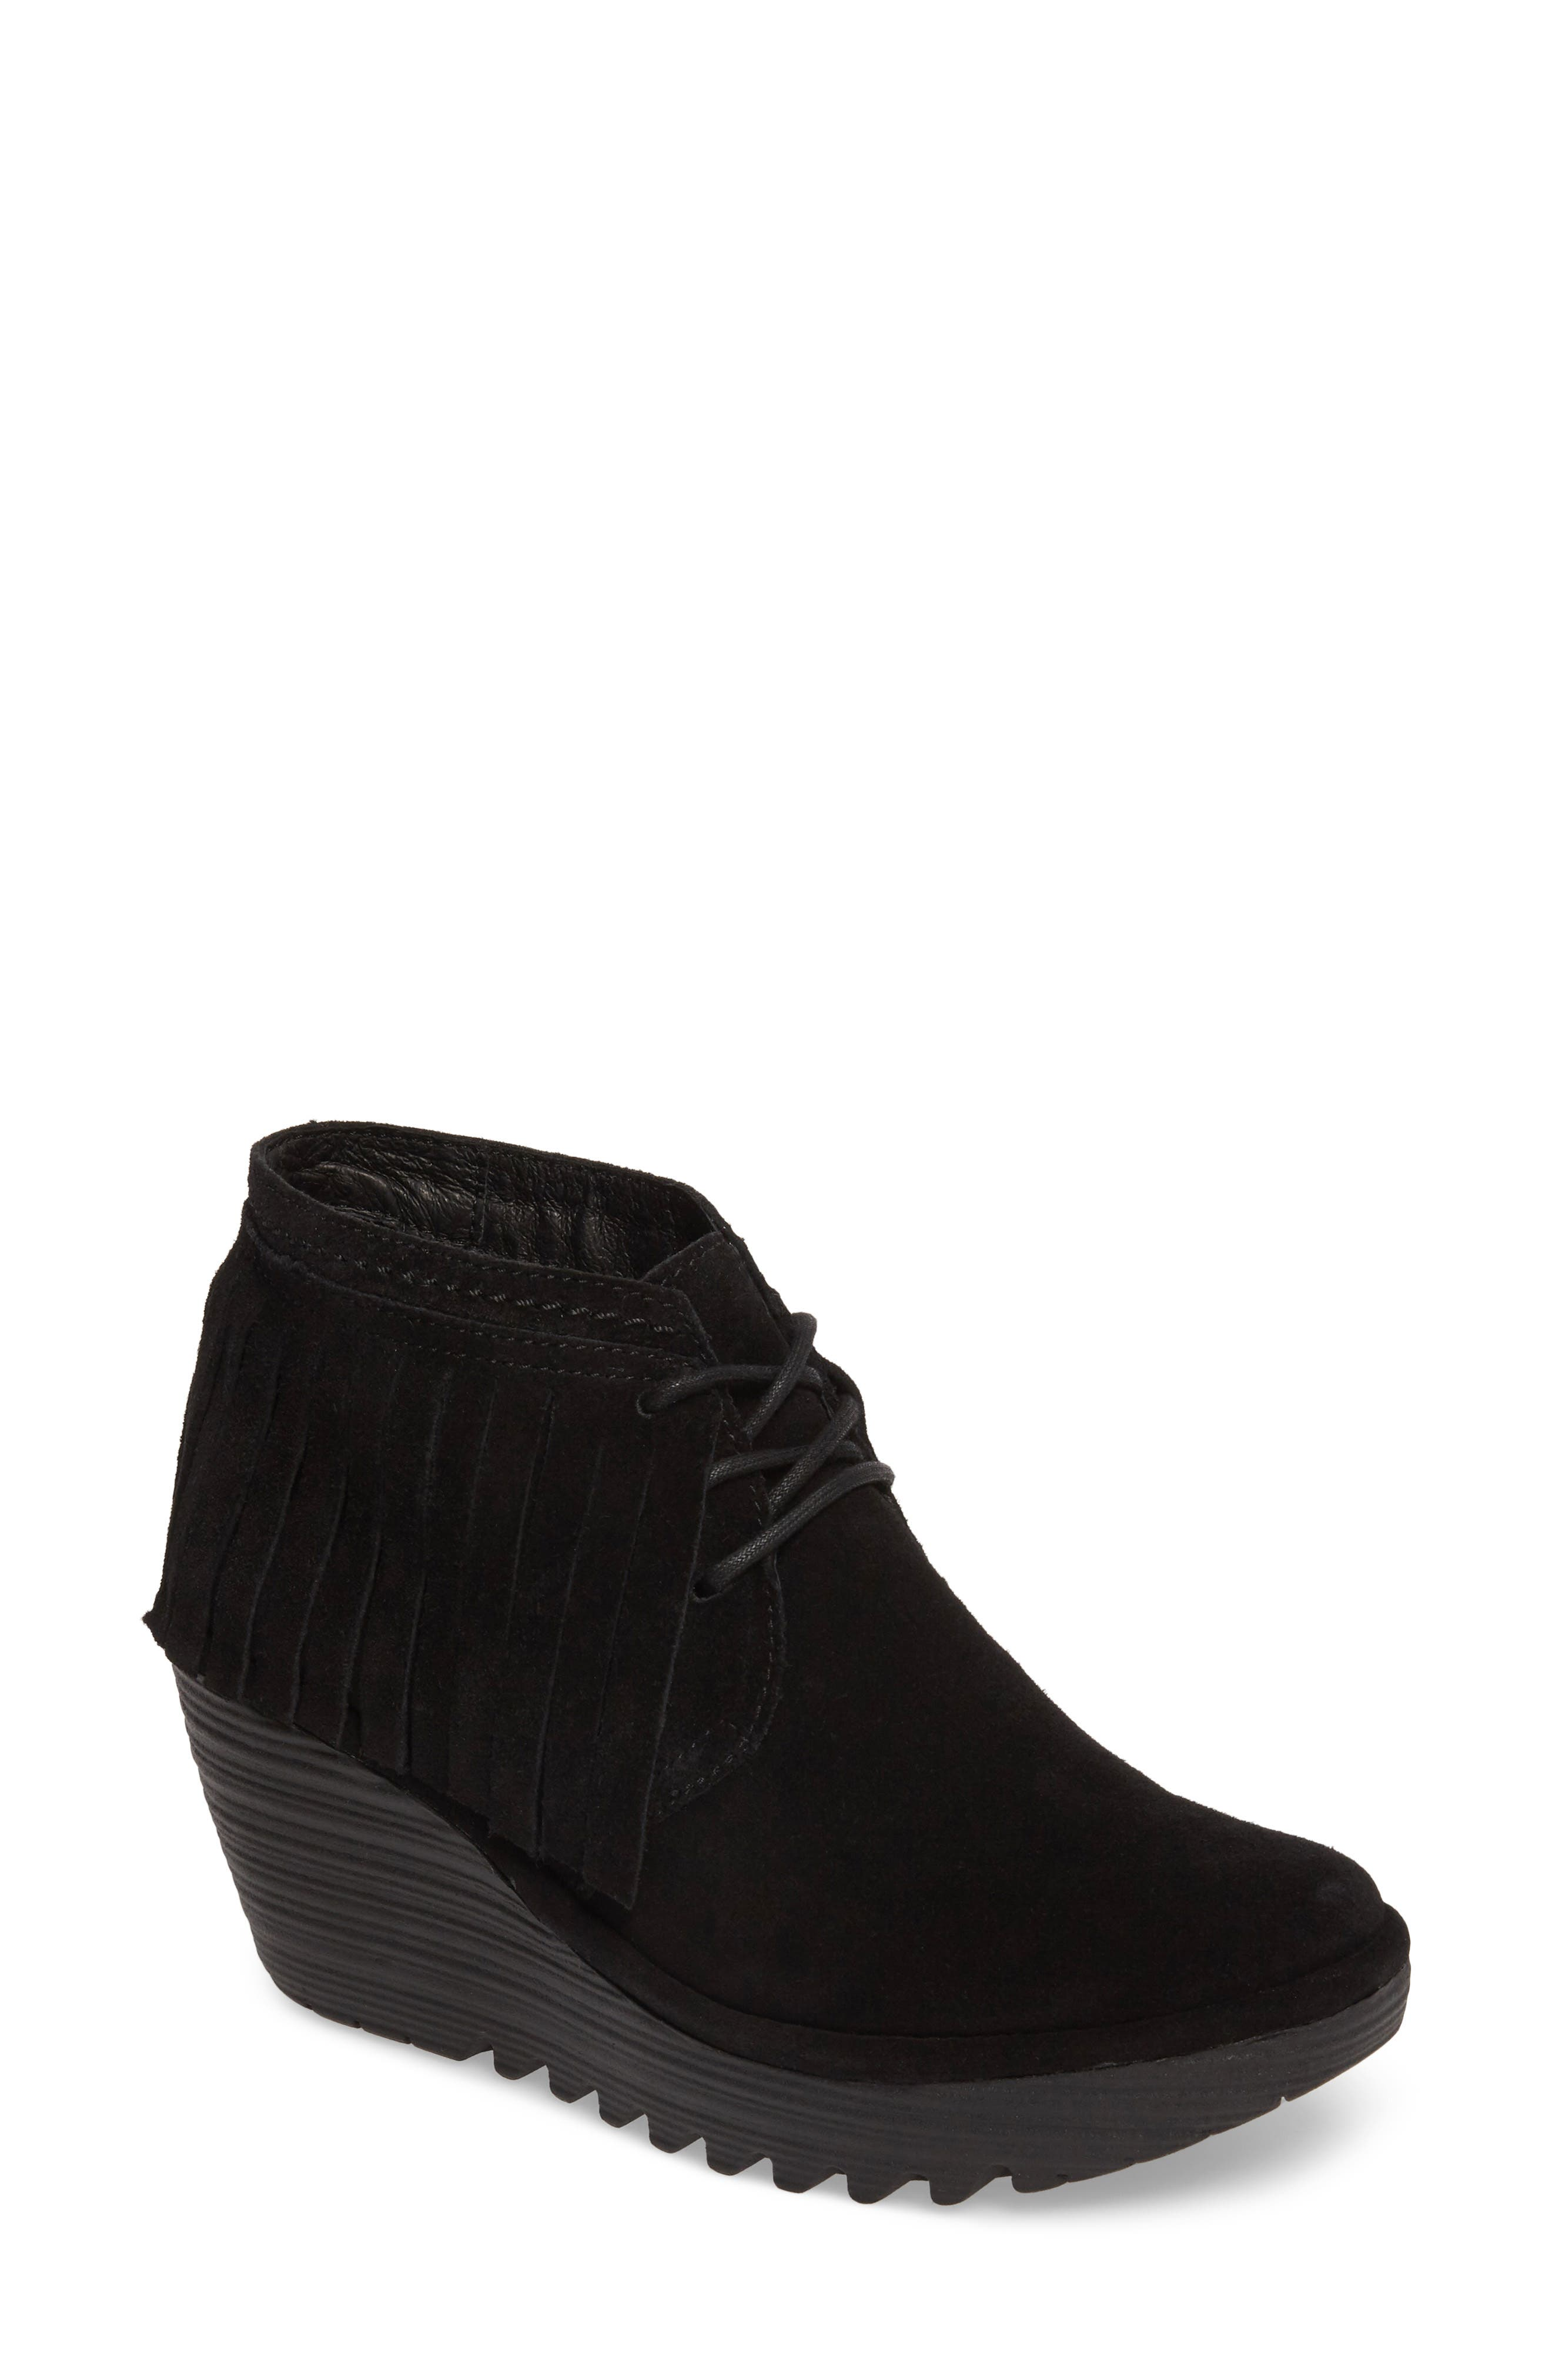 Yank Fringe Wedge Bootie, Main, color, 001